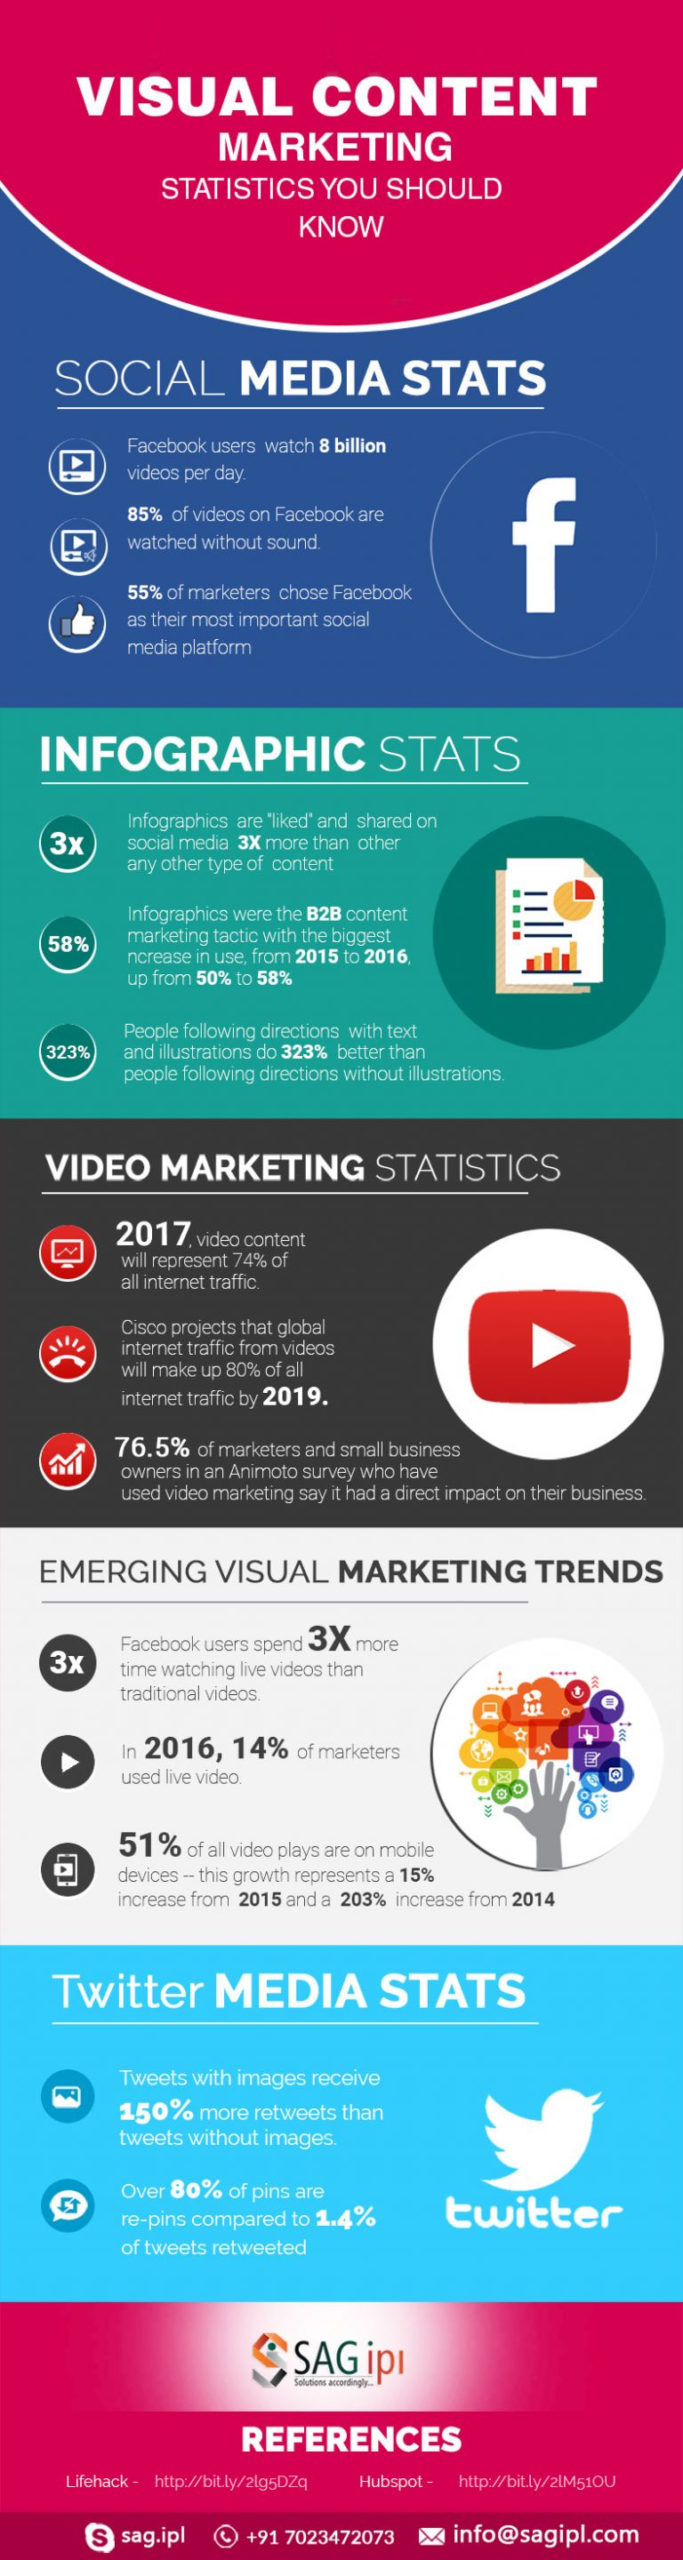 Visual Social Media and Content Marketing Statistics 2021 Image